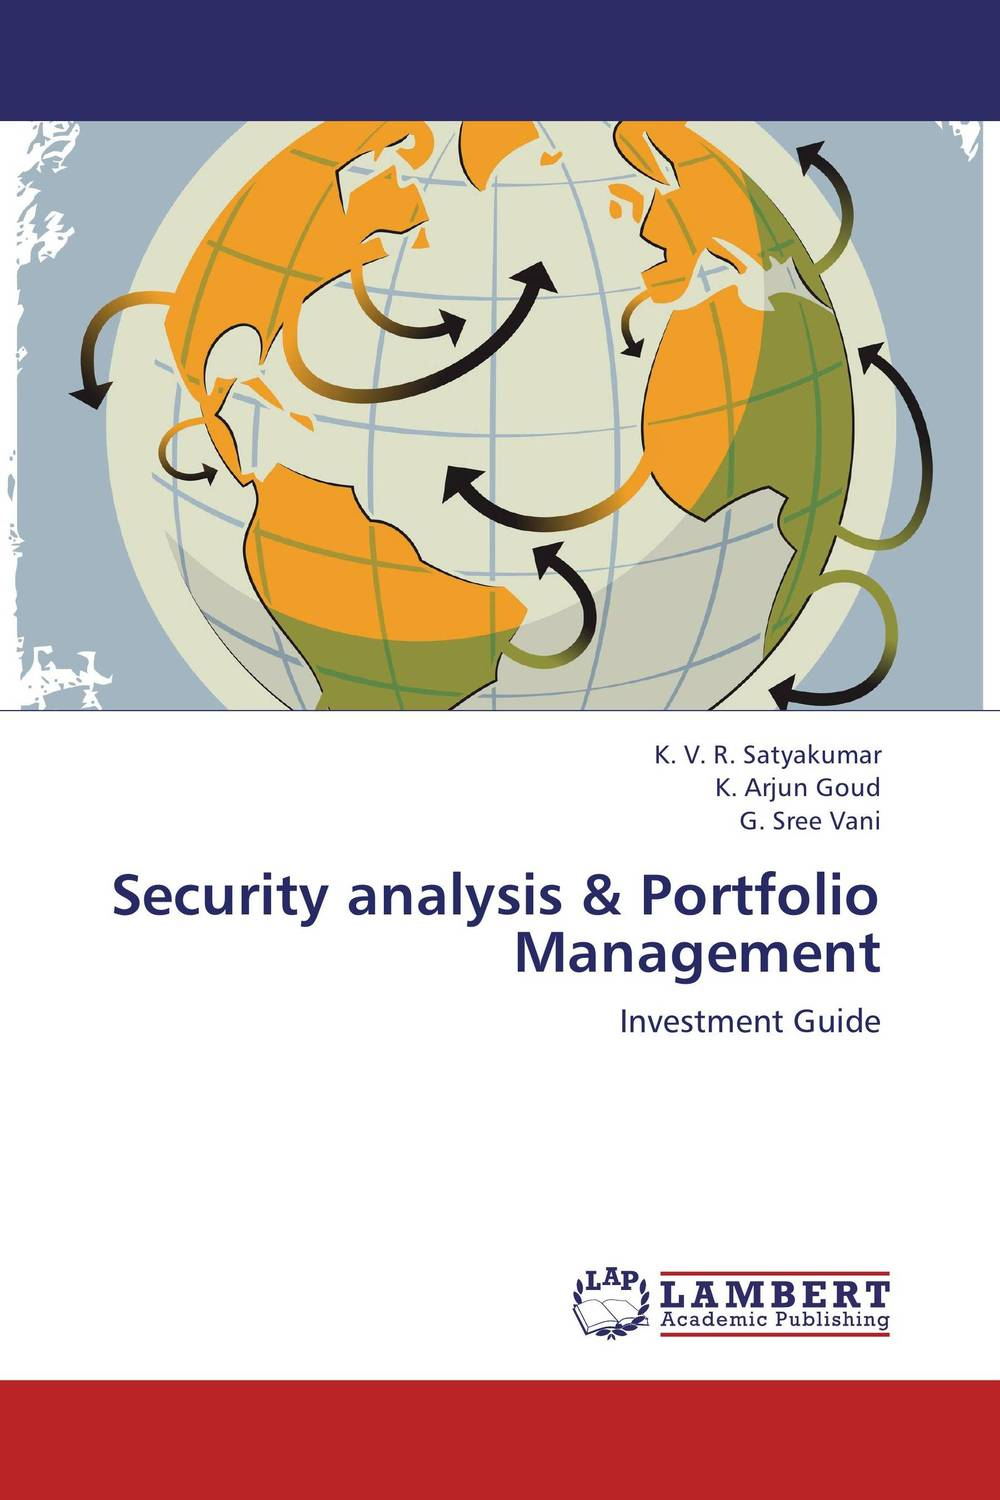 Security analysis & Portfolio Management belousov a security features of banknotes and other documents methods of authentication manual денежные билеты бланки ценных бумаг и документов